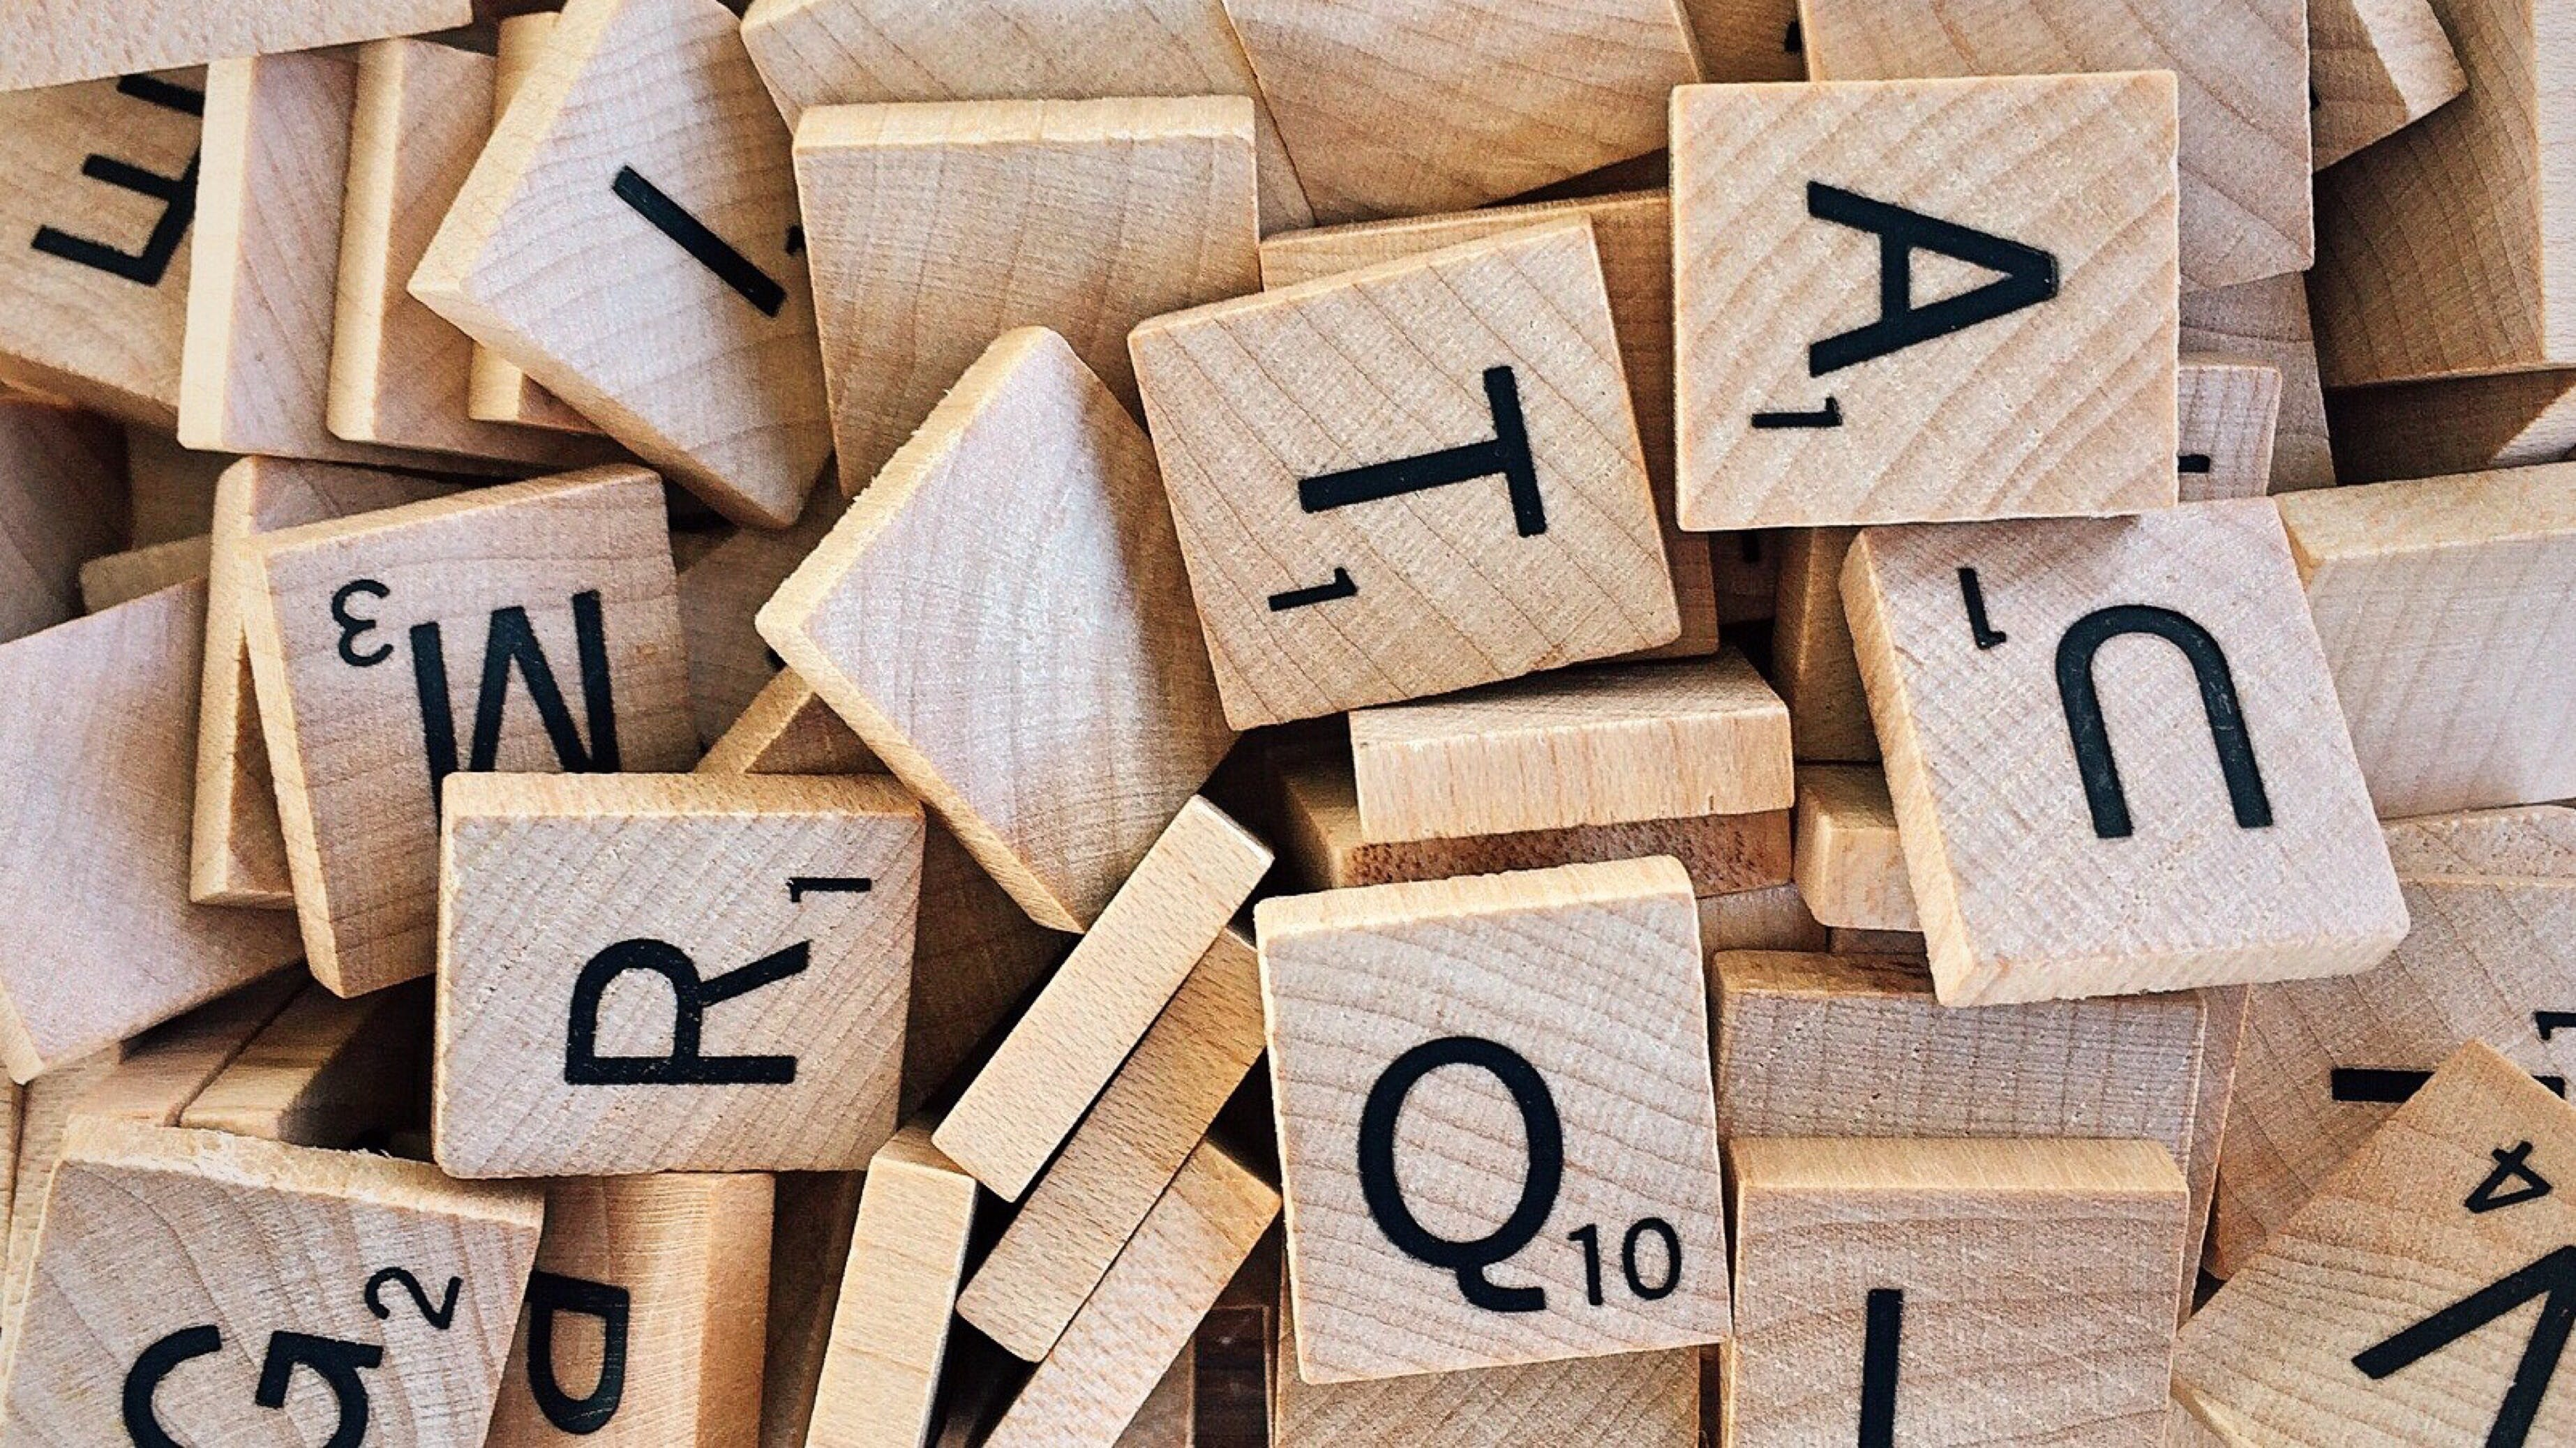 Free stock photo of wood, wooden, scrabble, letters